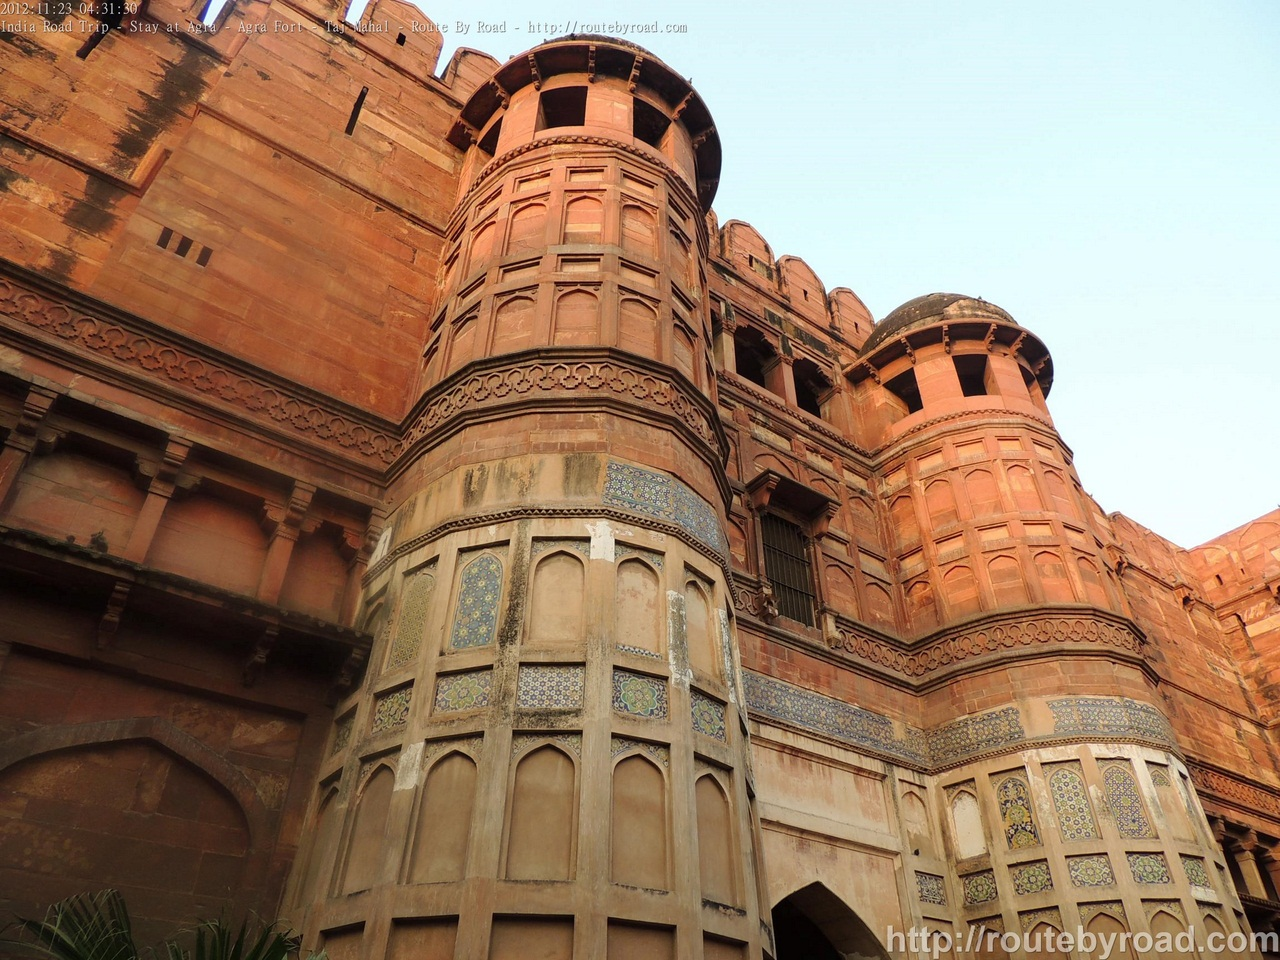 India Road Trip - Stay at Agra - Agra Fort - Taj Mahal - Route By Road - http://routebyroad.com